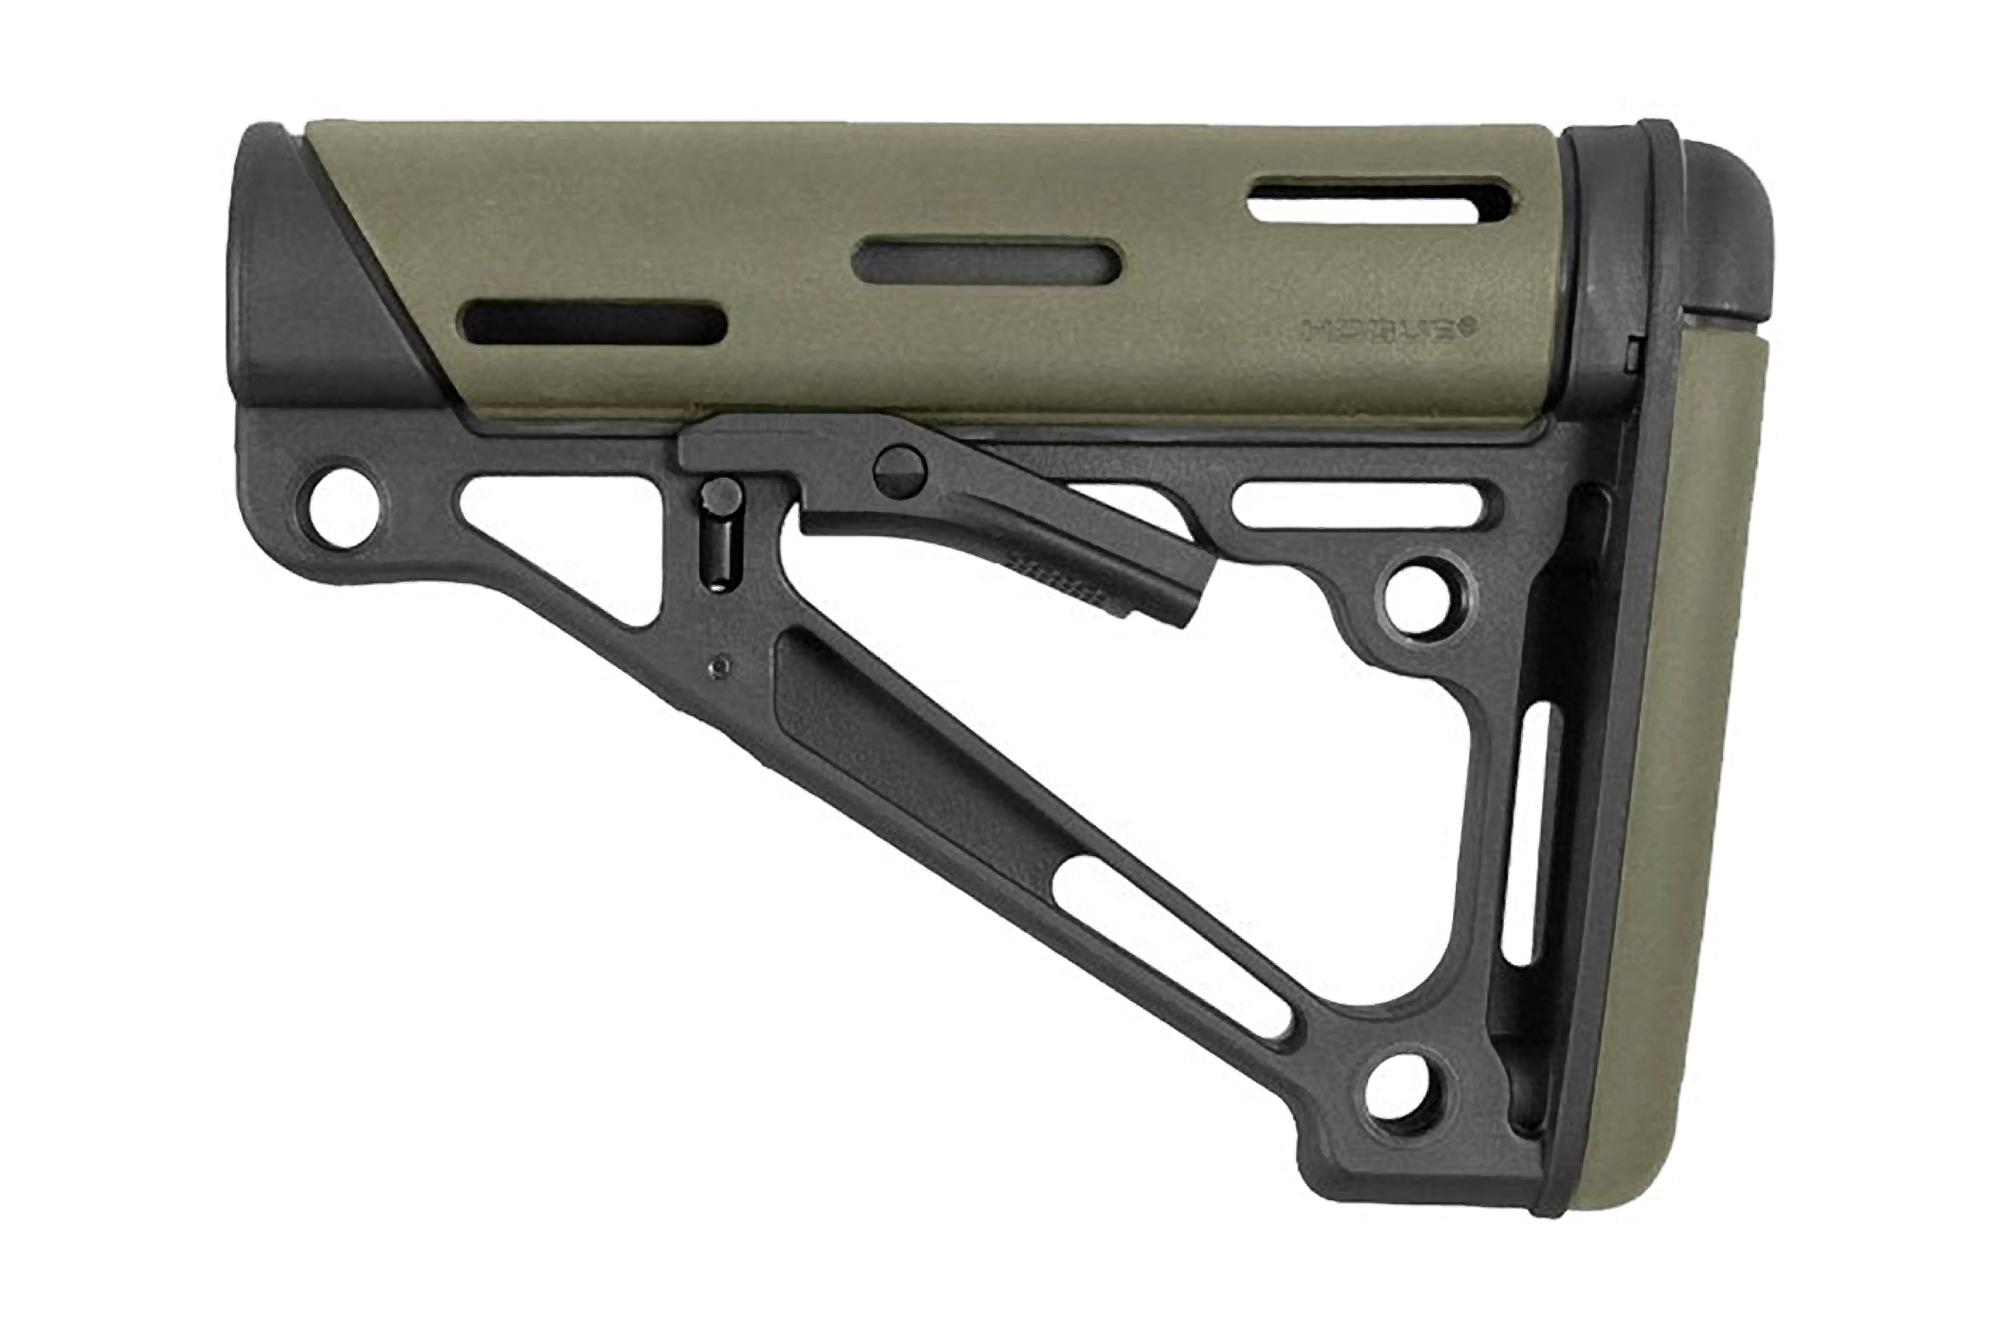 Hogue OverMolded Collapsible Buttstock MIL-SPEC - Olive Drab Green